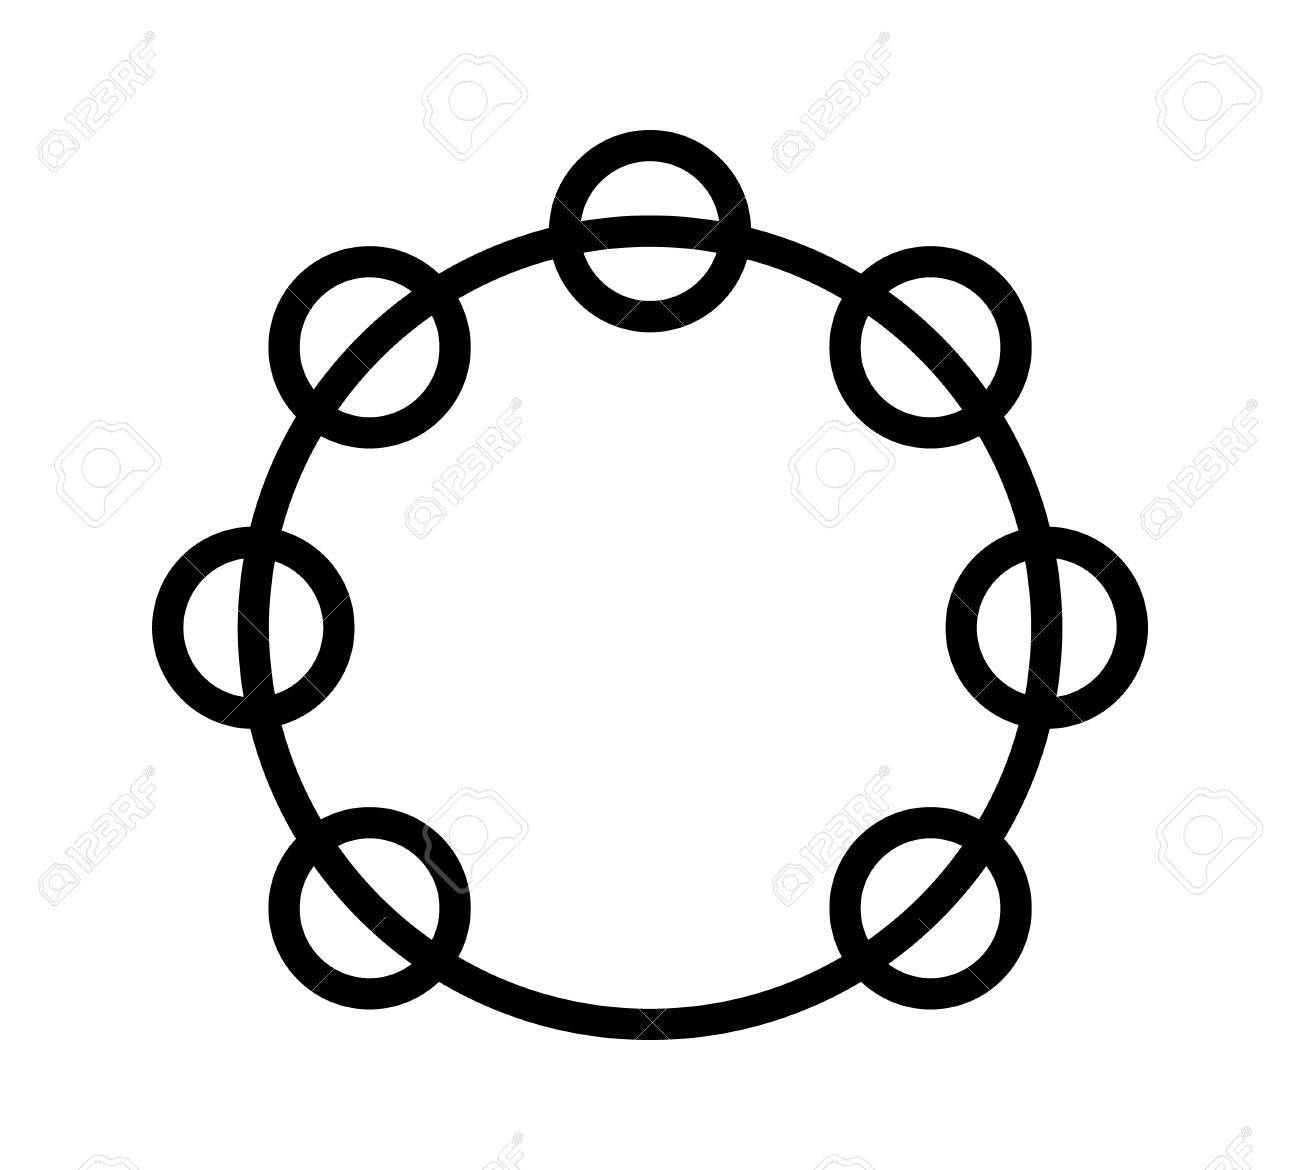 Headless Royalty Free Stock Music >> Headless Tambourine Musical Instrument Line Art Icon For Music